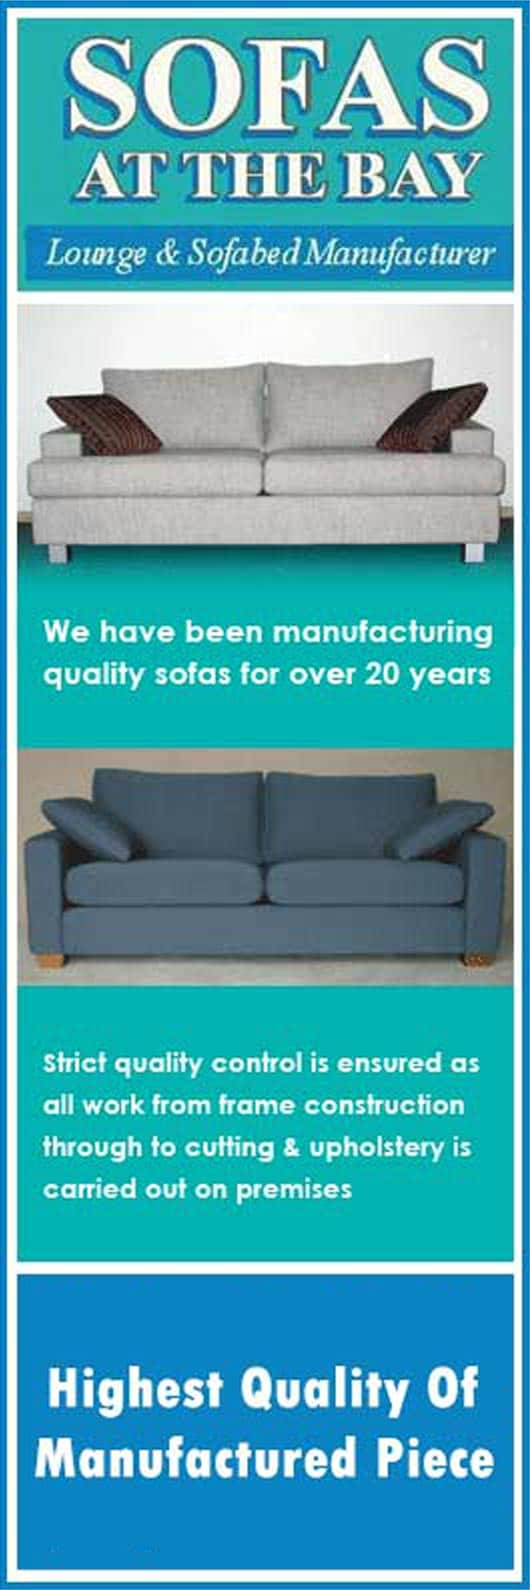 thebay furniture. Sofas At The Bay - Promotion Thebay Furniture